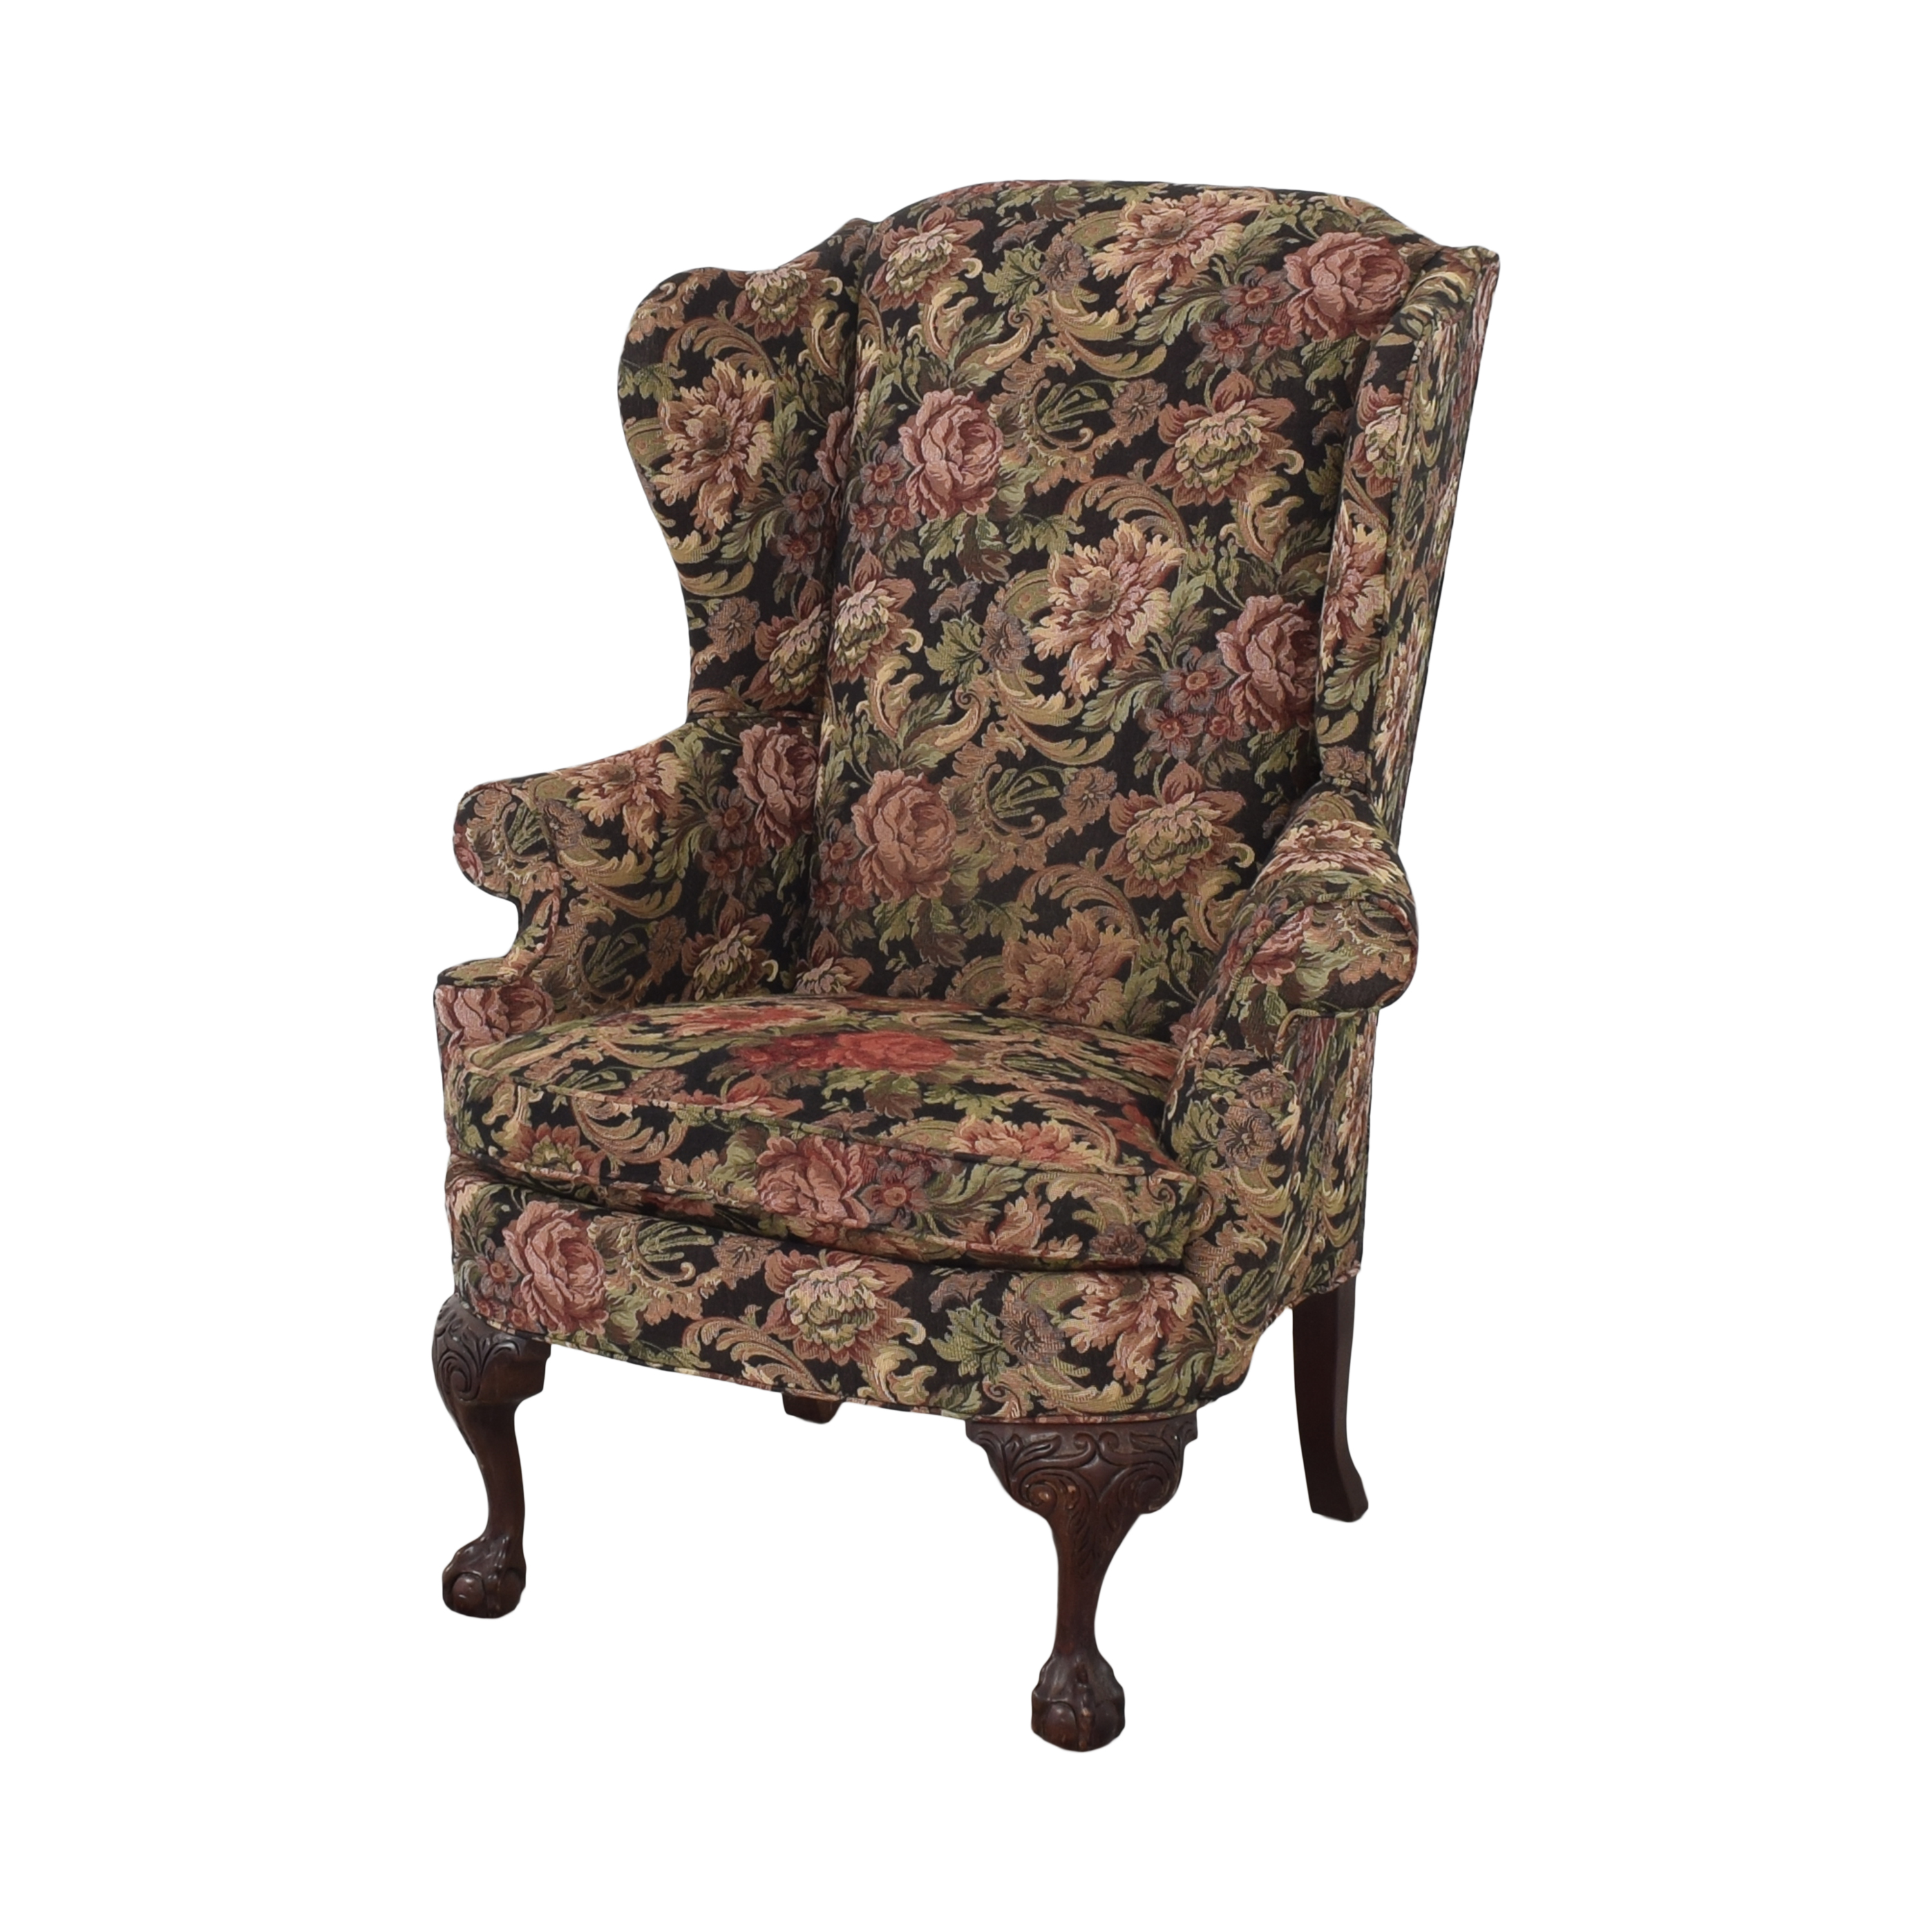 Thomasville Thomasville Queen Anne Wing Back Chair second hand